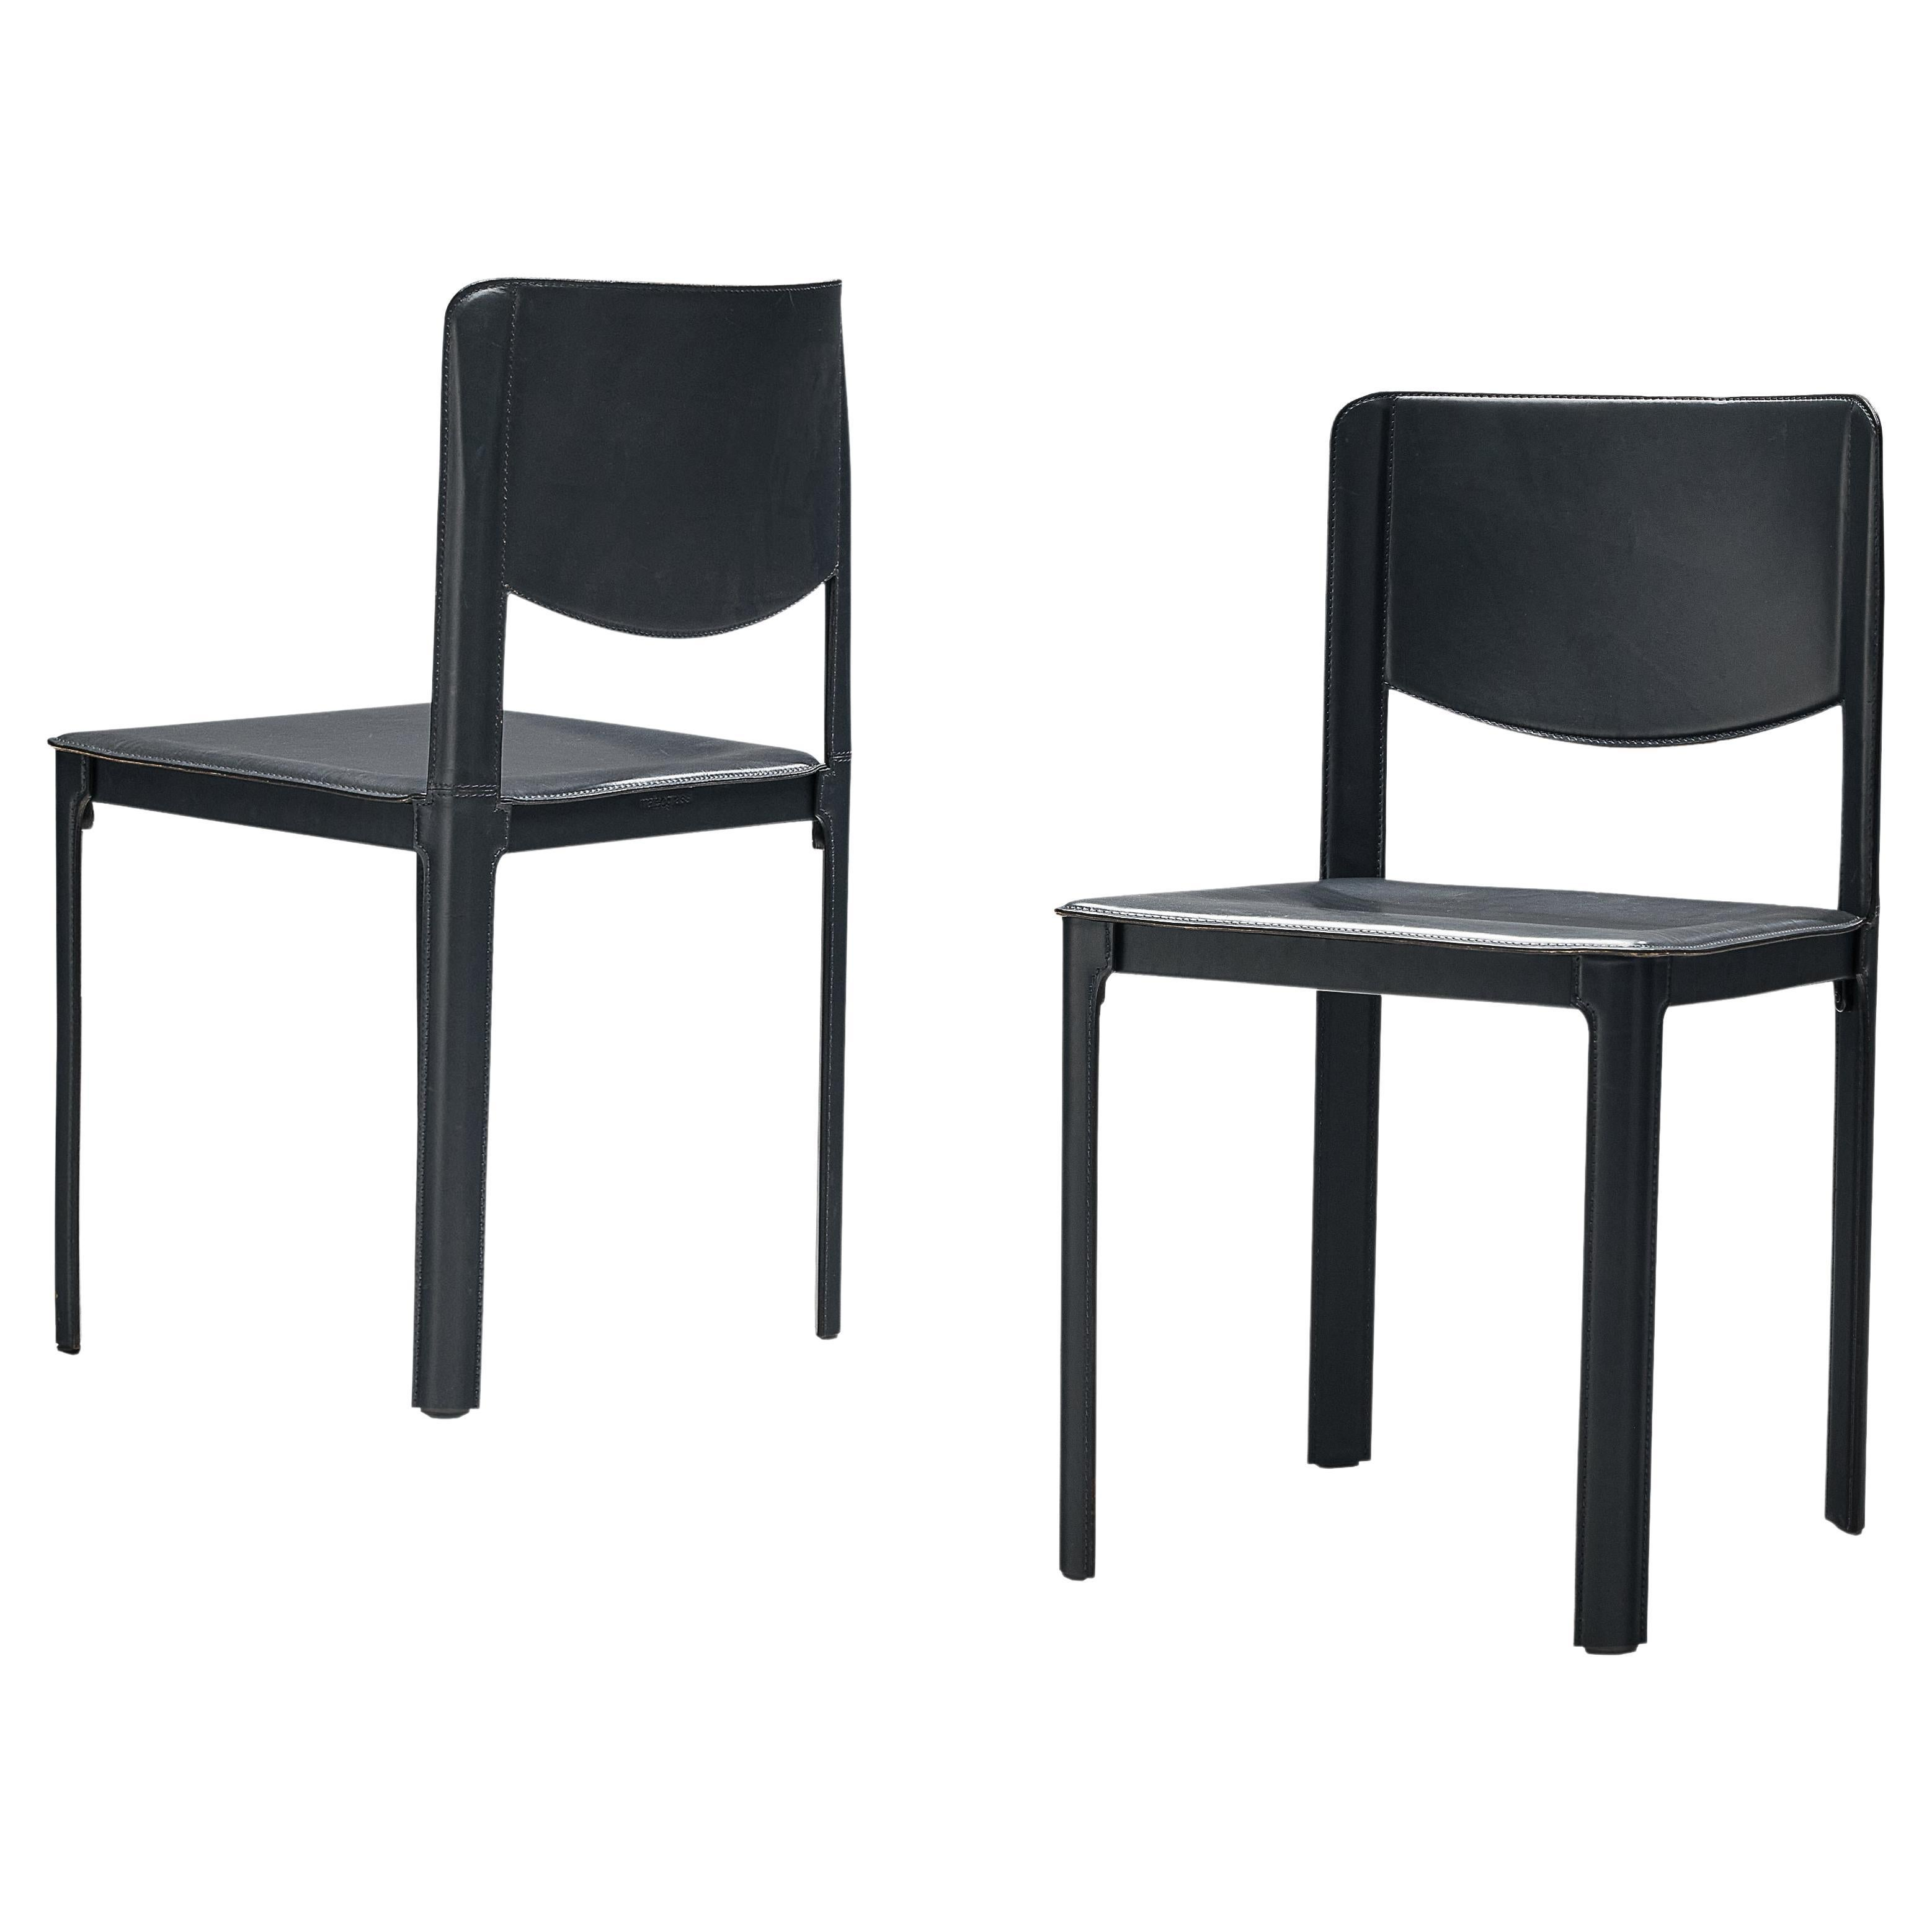 Pair of Matteo Grassi Dining Chairs in Leather and Steel